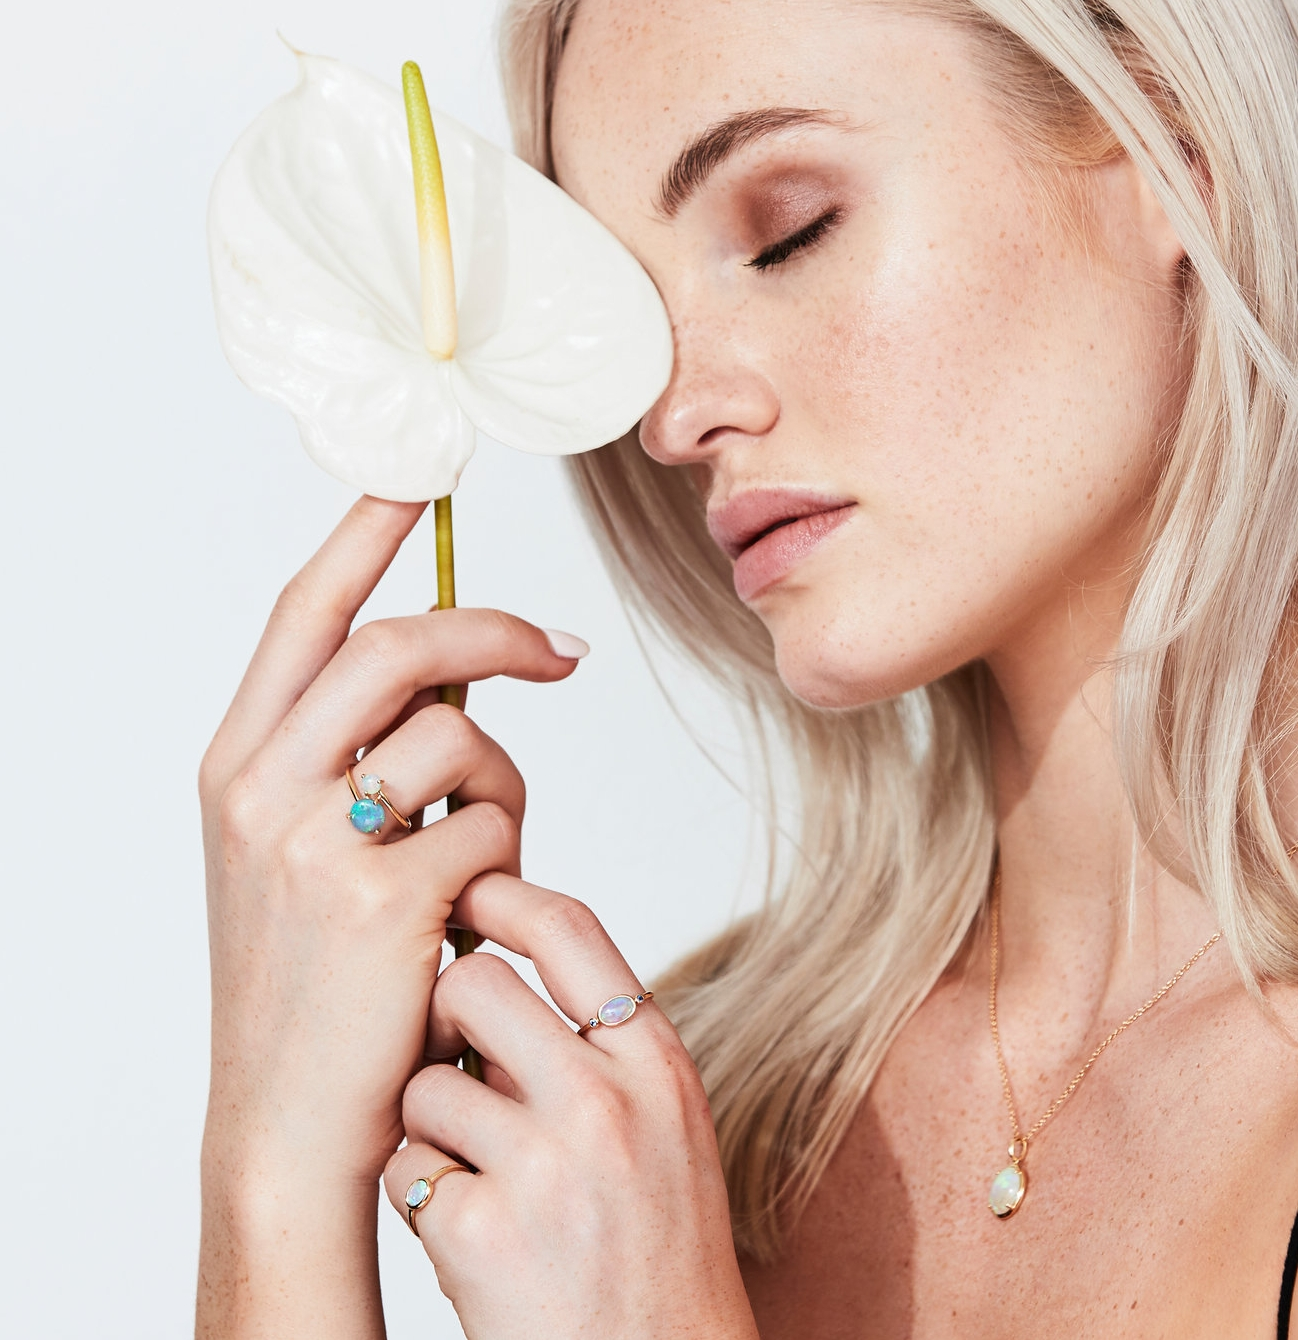 Ethereal. - There is nothing quite like the beauty of an opal, it's essence is otherworldly. With this collection, we wanted to create a timeless ode to the earth, a wearable reminder of nature and all it's glory.